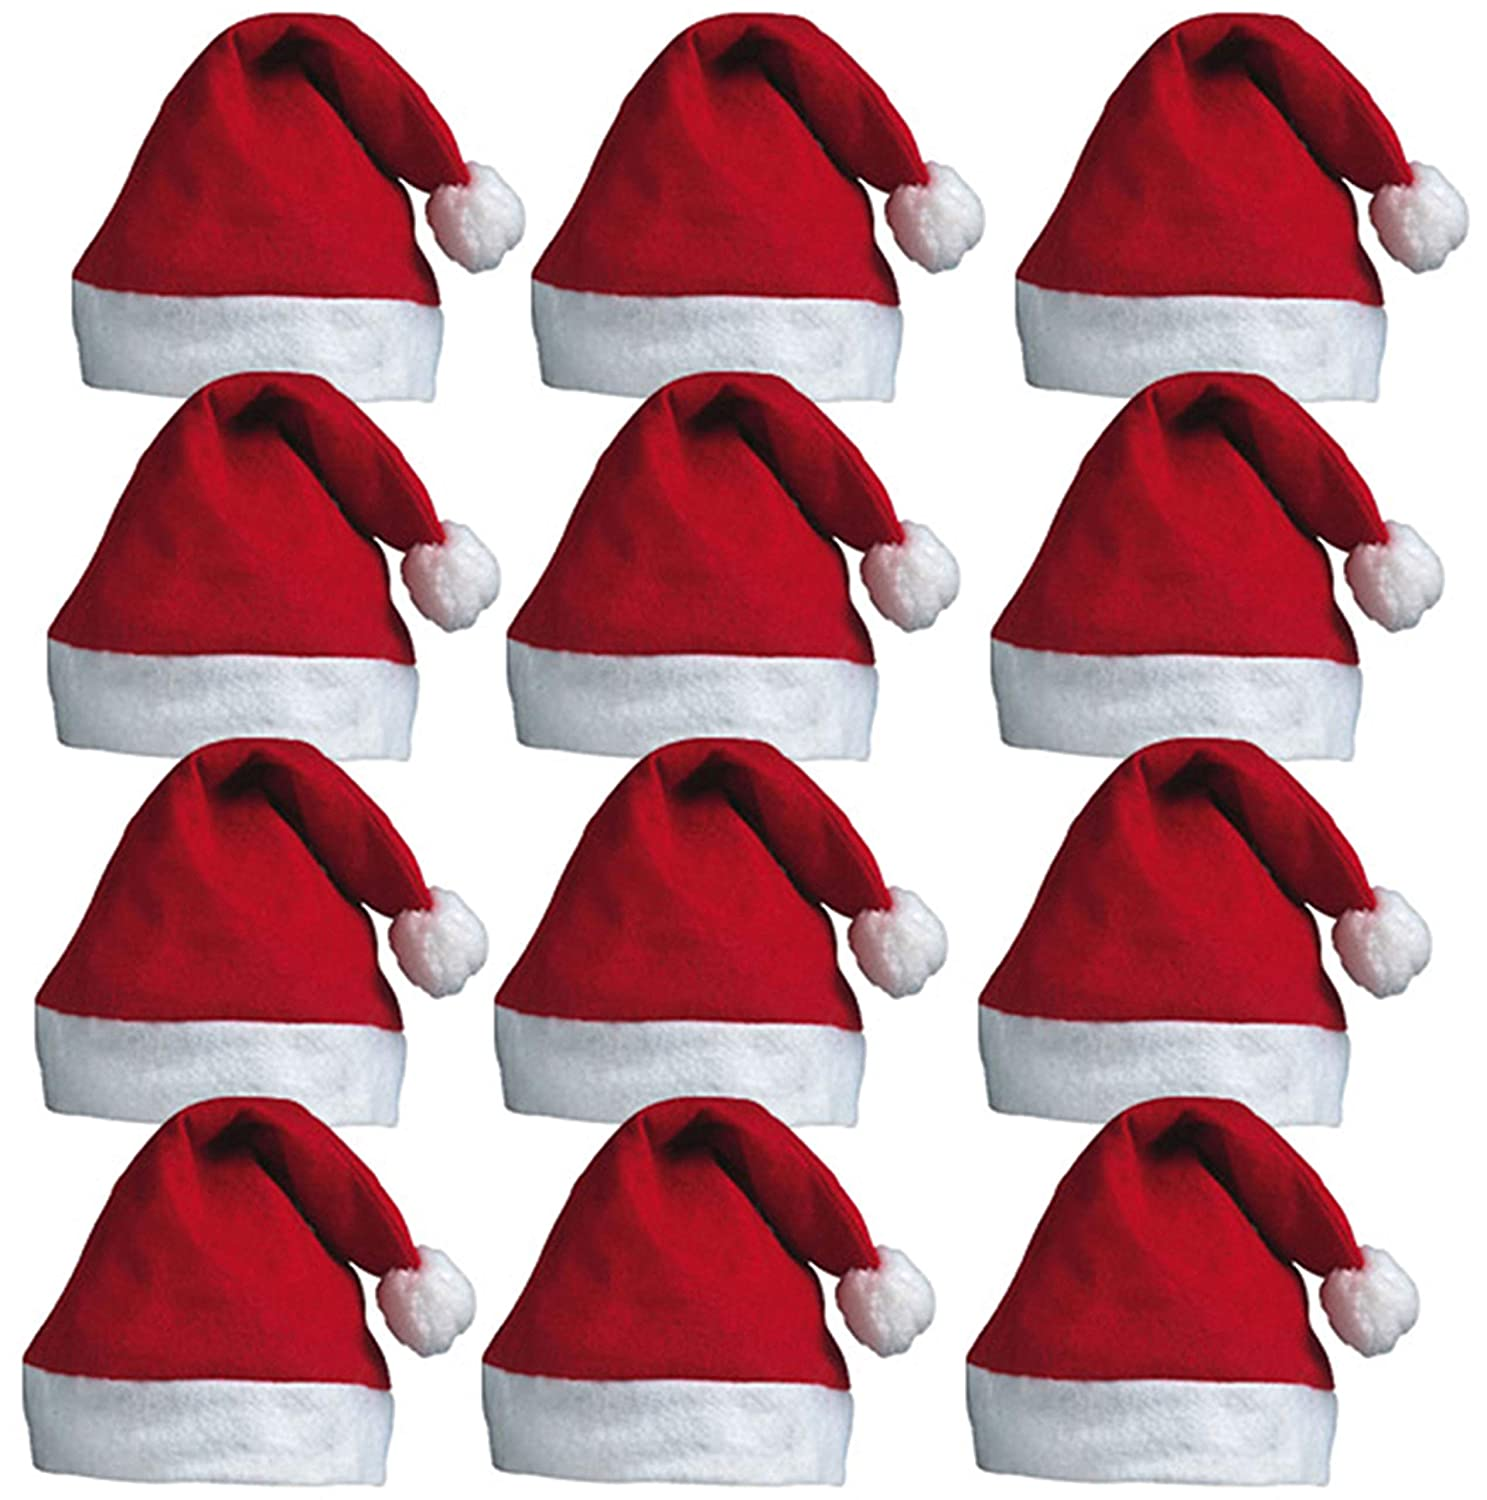 511a54be3 REDSTAR FANCY DRESS 12 x Santa Hats - Father Christmas Red Santa Hats with  Bobble for Xmas Office Parties